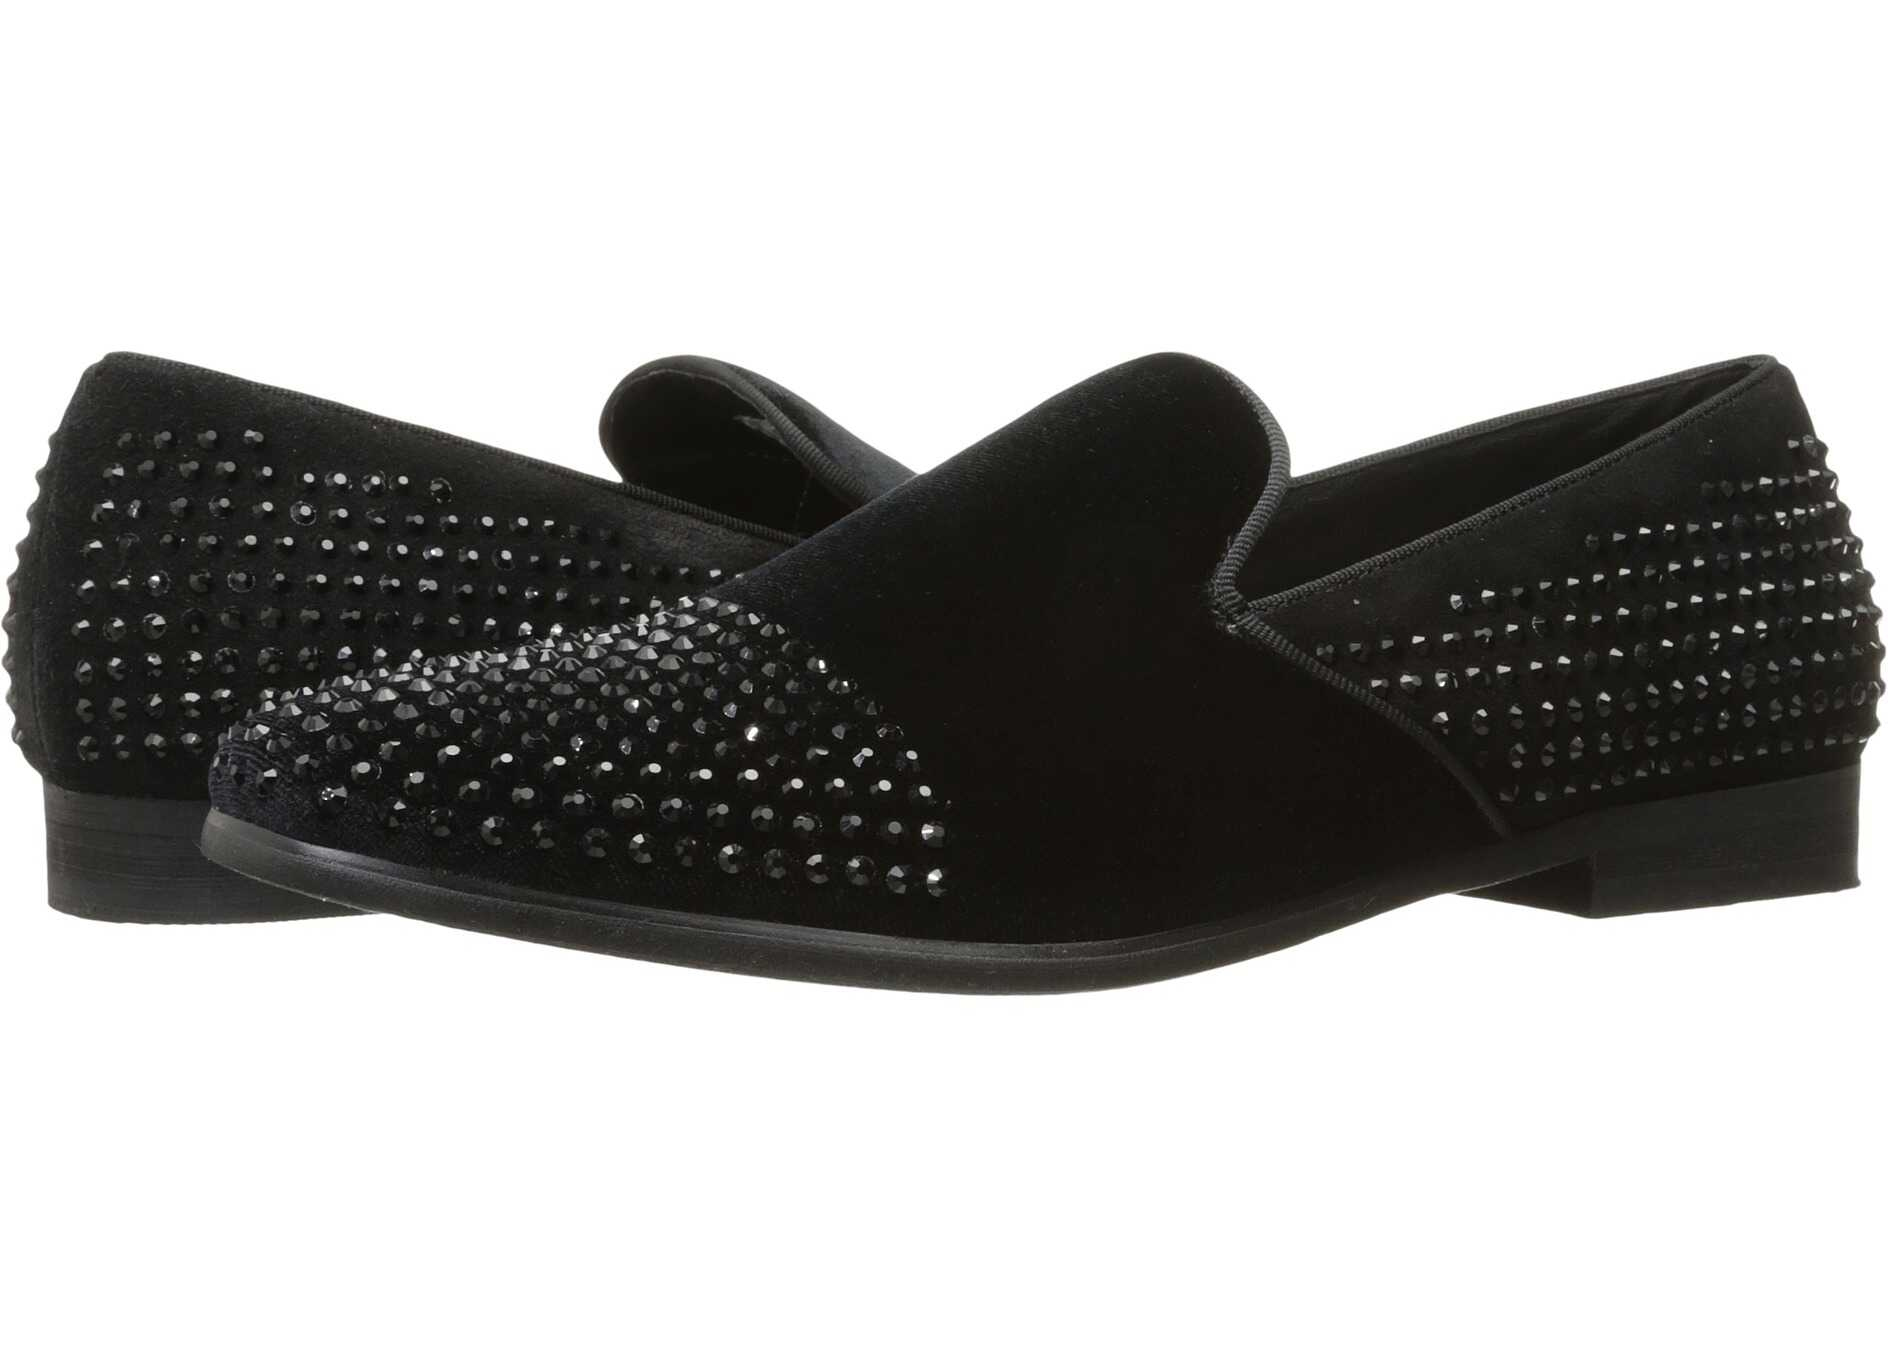 Steve Madden Clarity Black